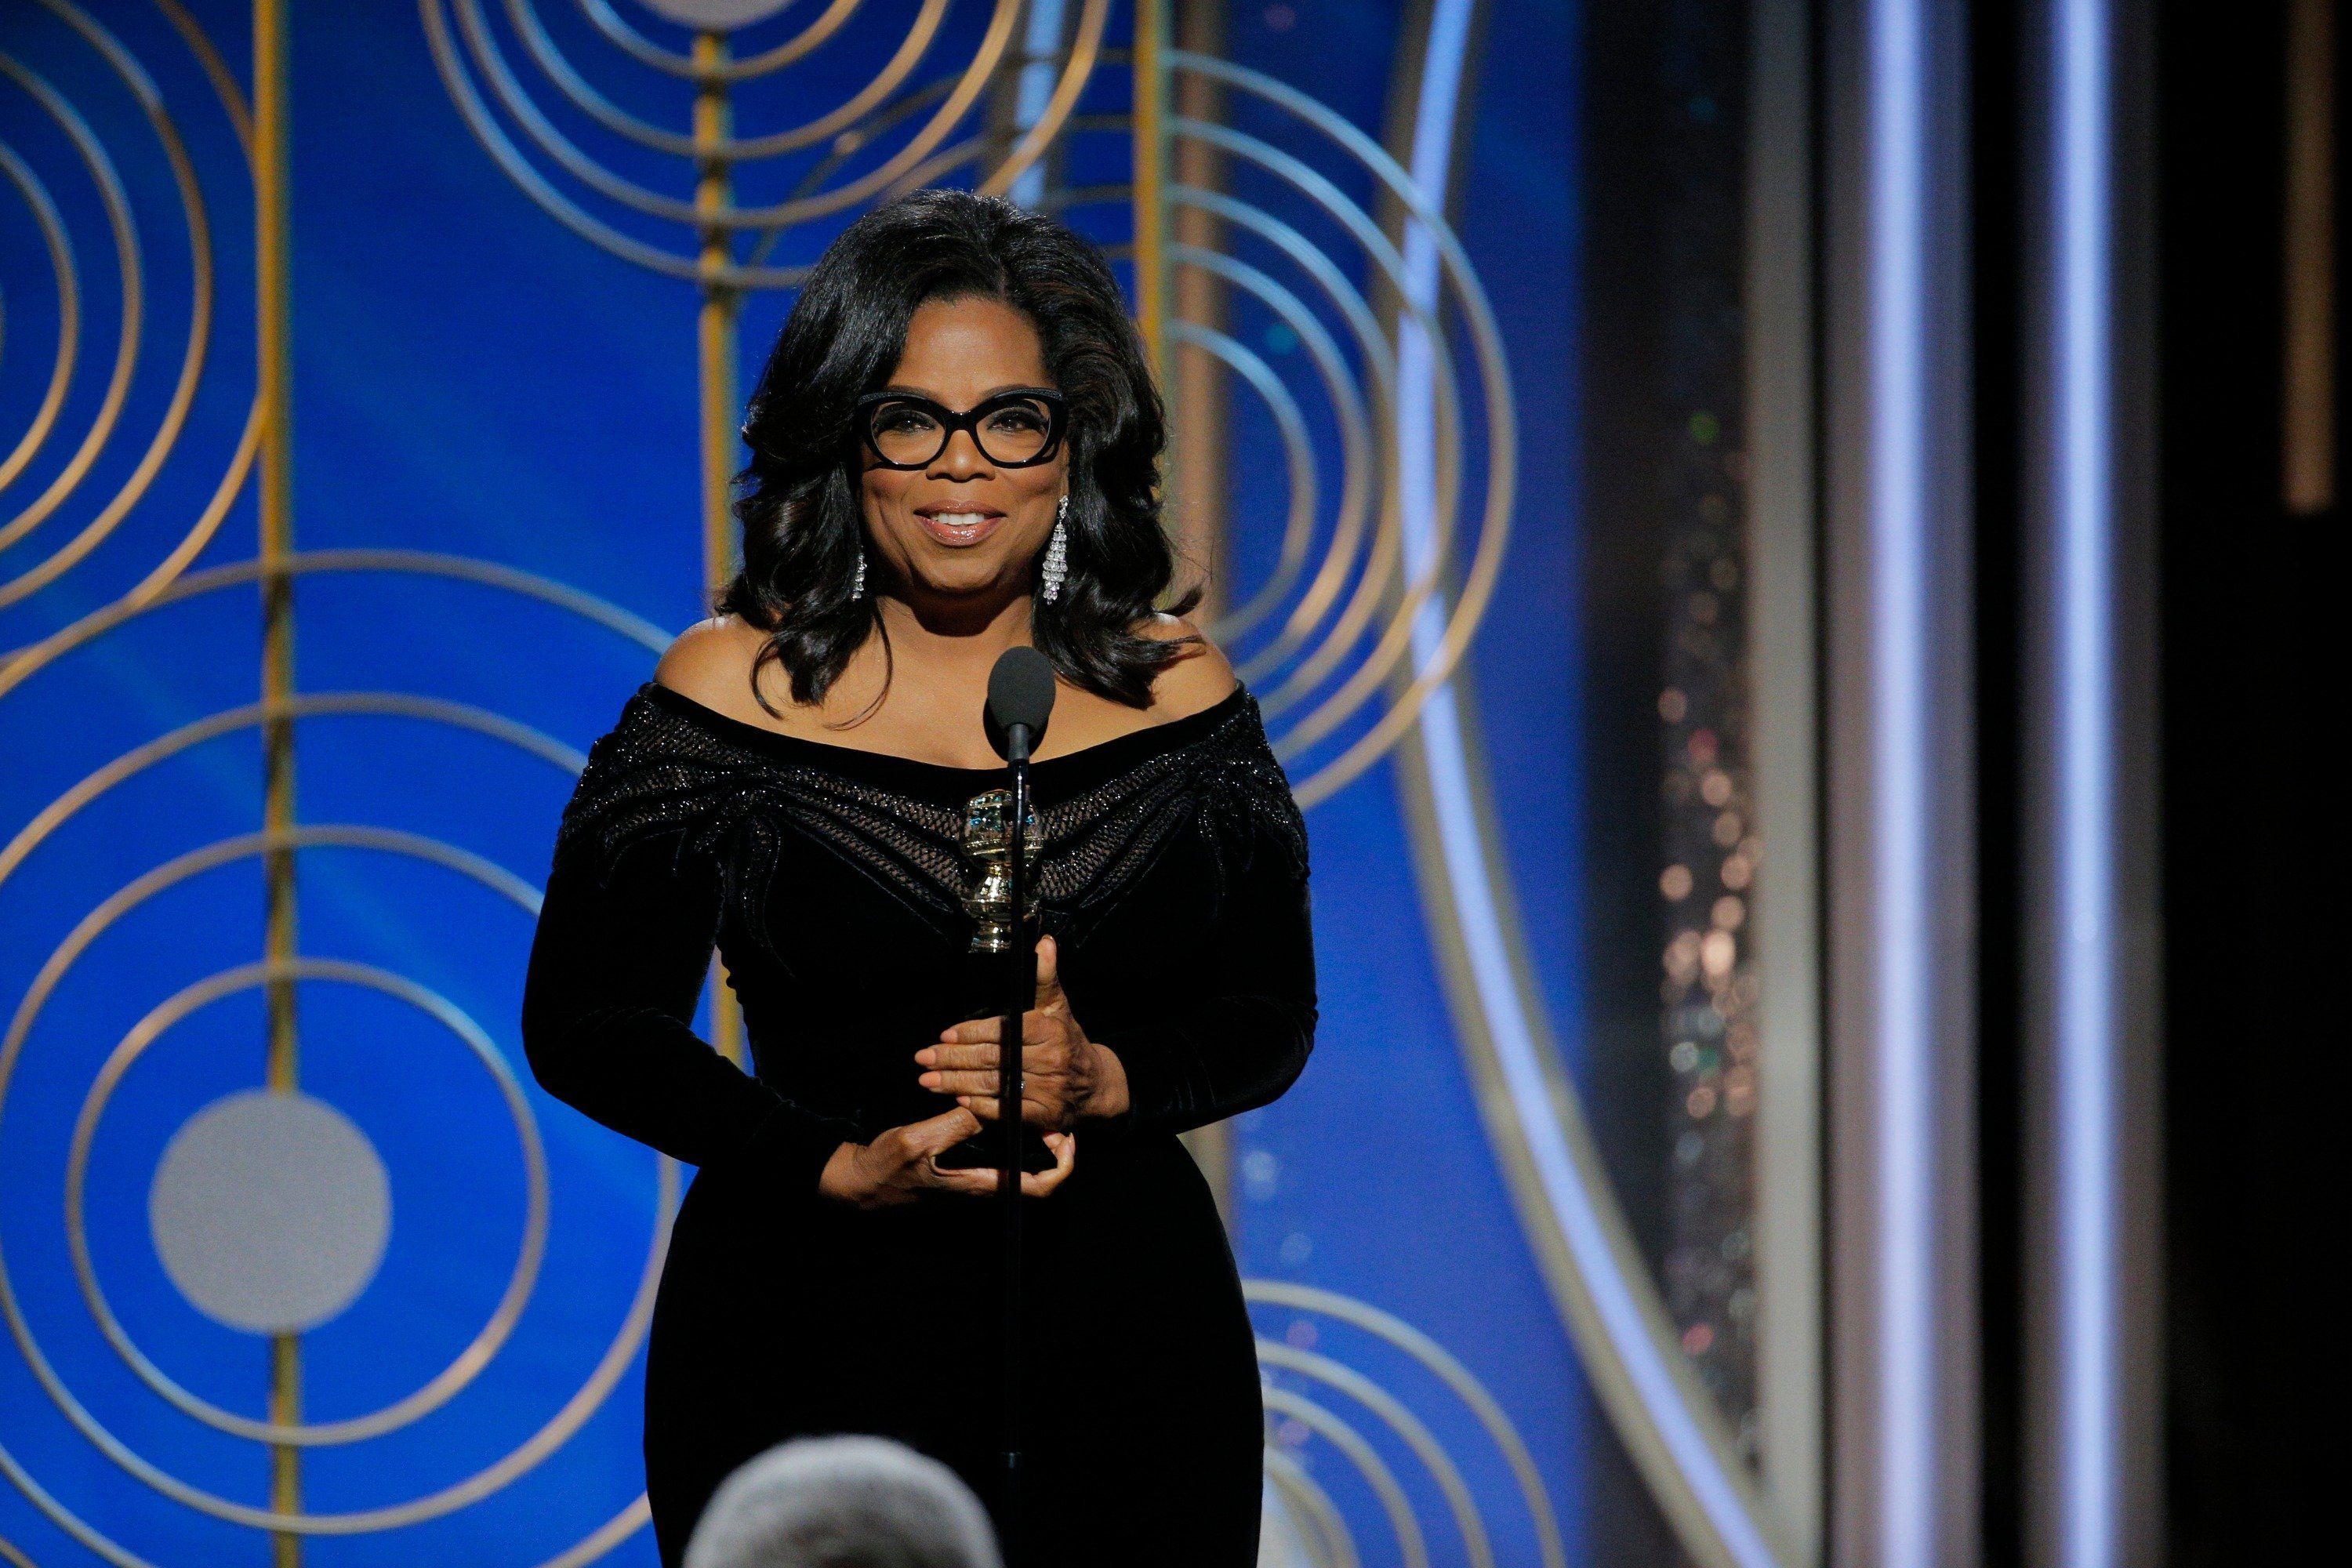 Oprah confirms she will not run for president